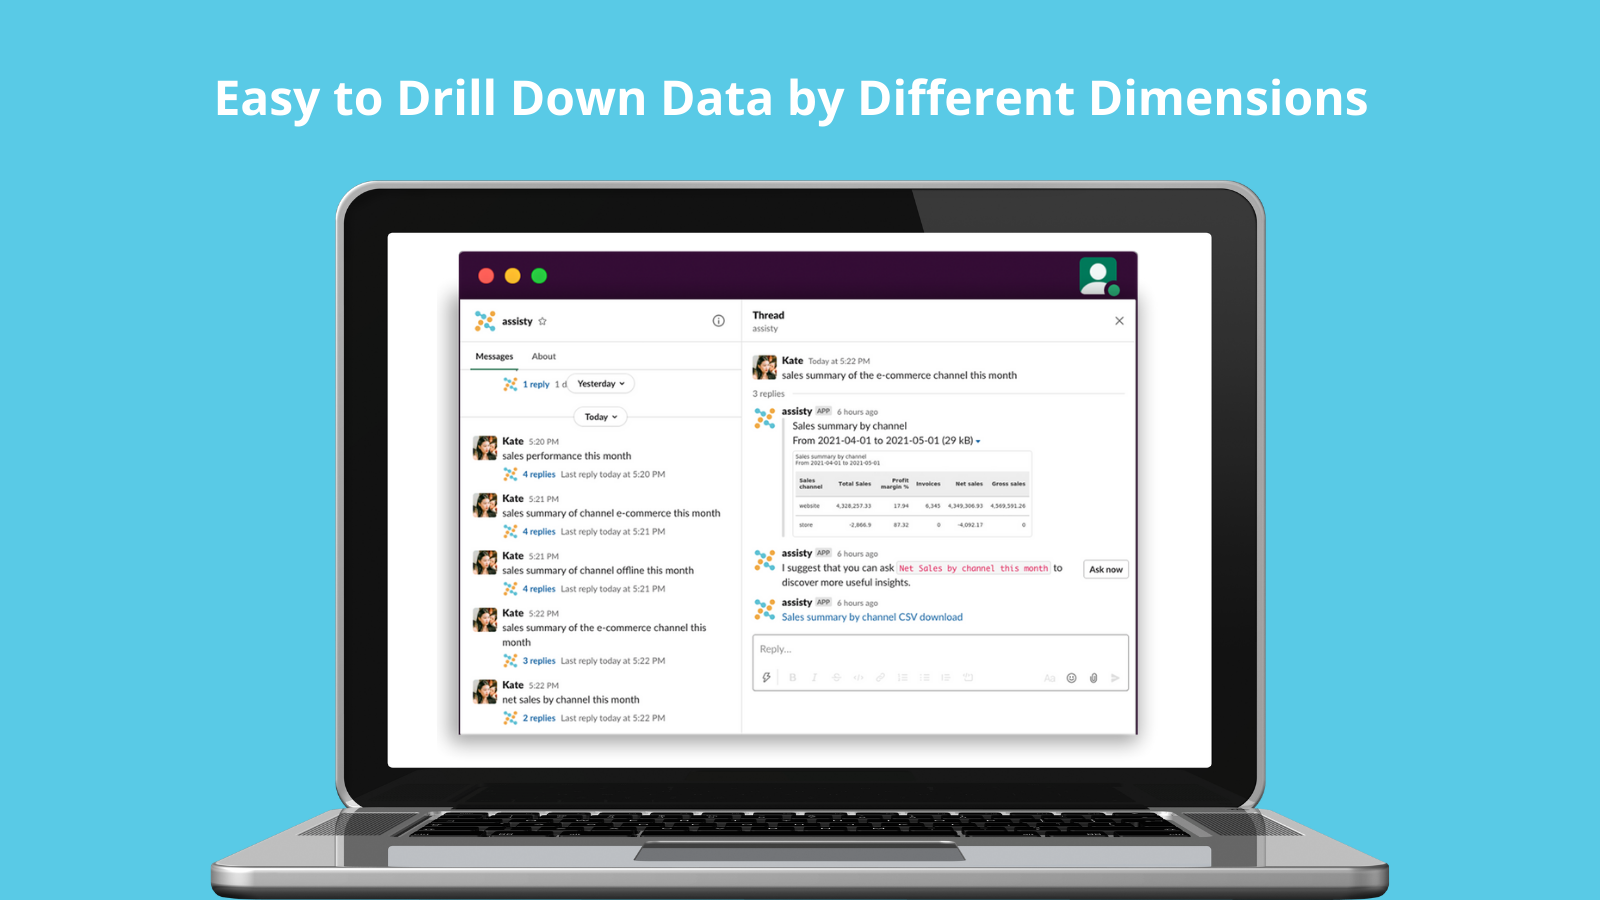 You can see the drilldown reports and download .CSV file